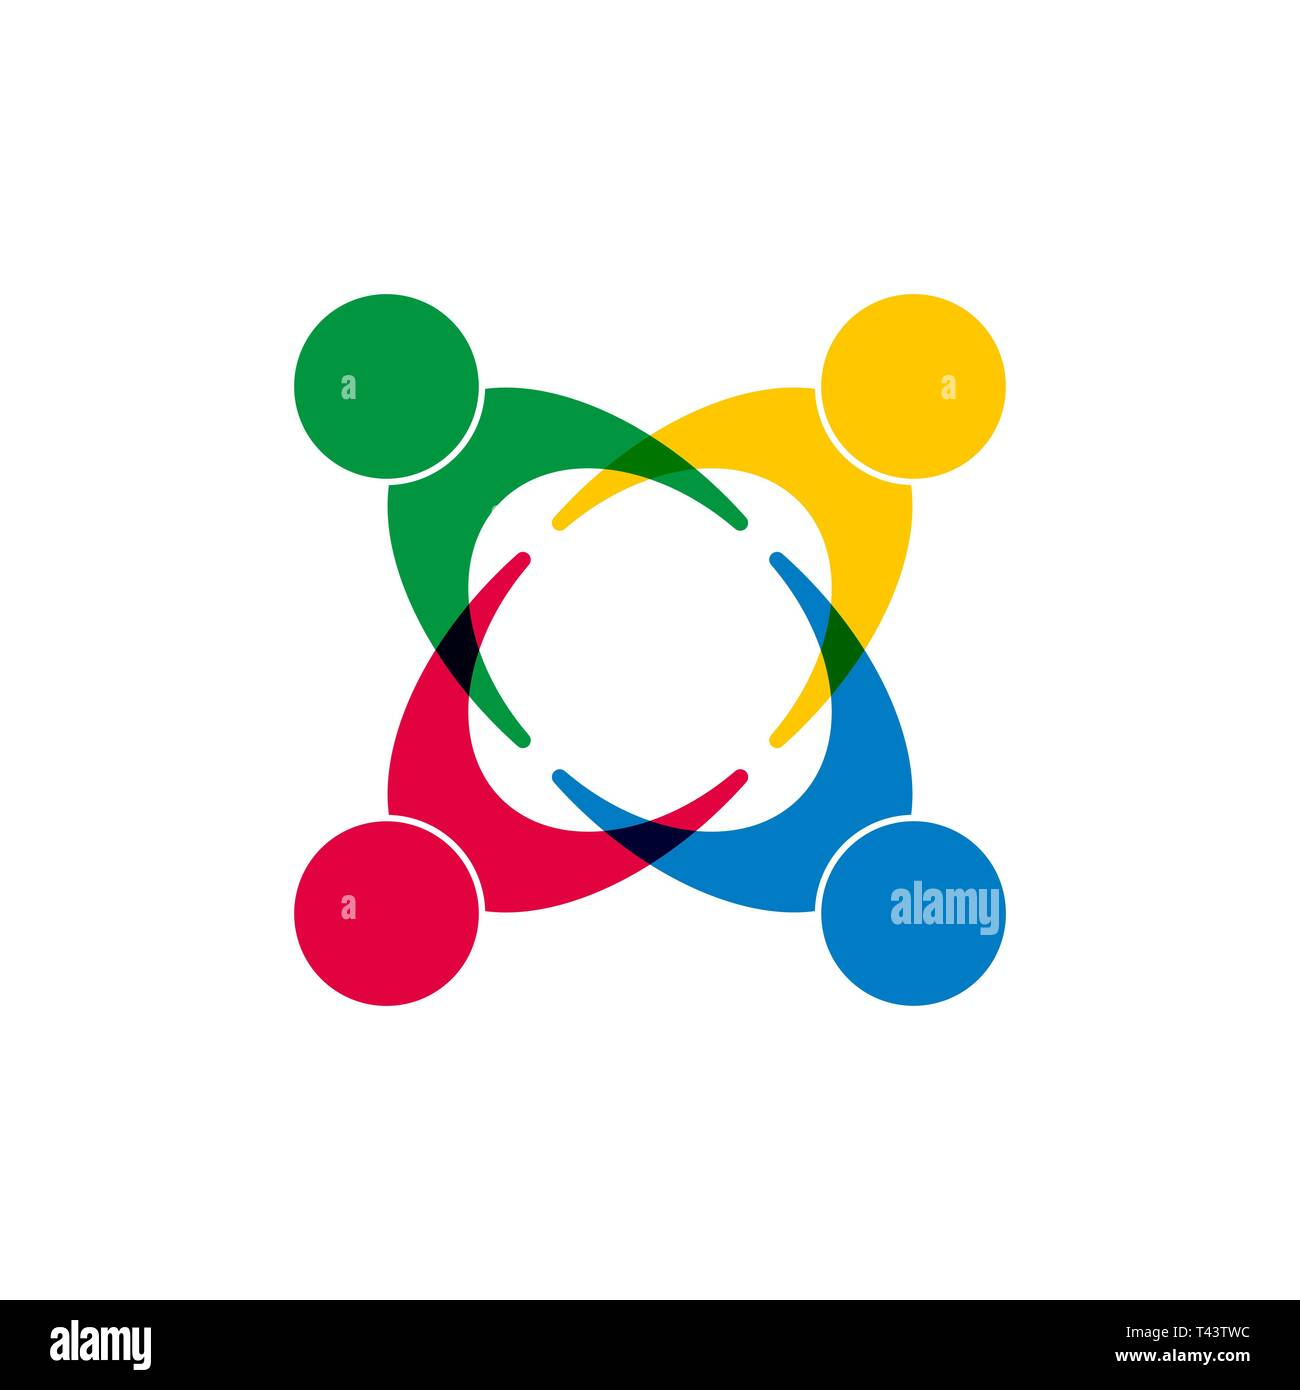 Symbol Of Unity Of Different People Flat Design Stock Vector Image Art Alamy